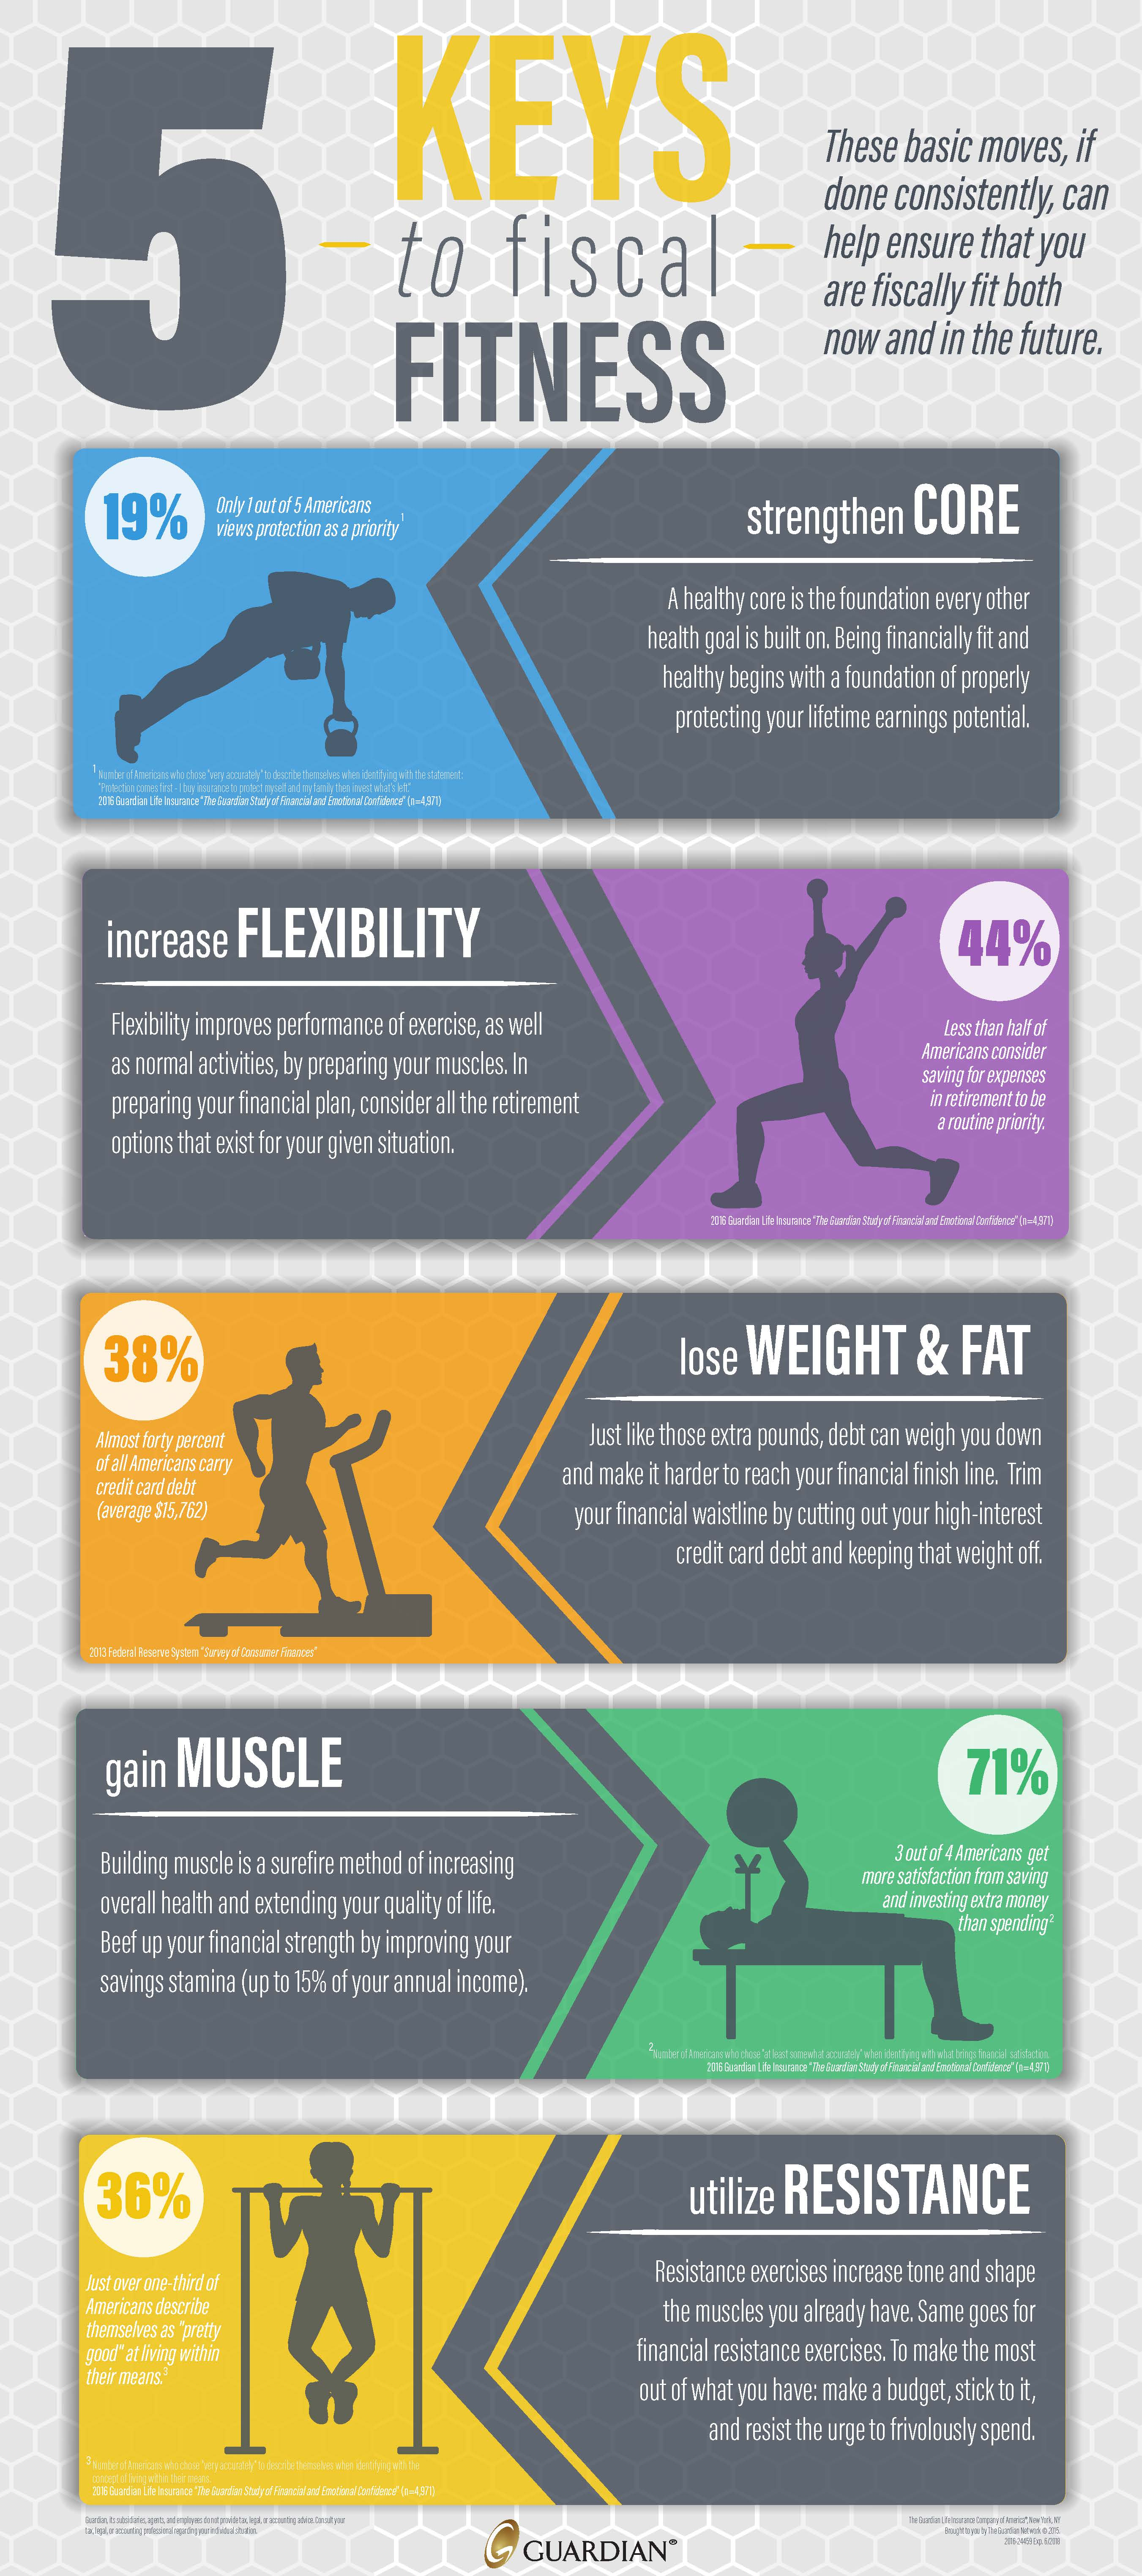 Fiscal_Fitness_Infographic